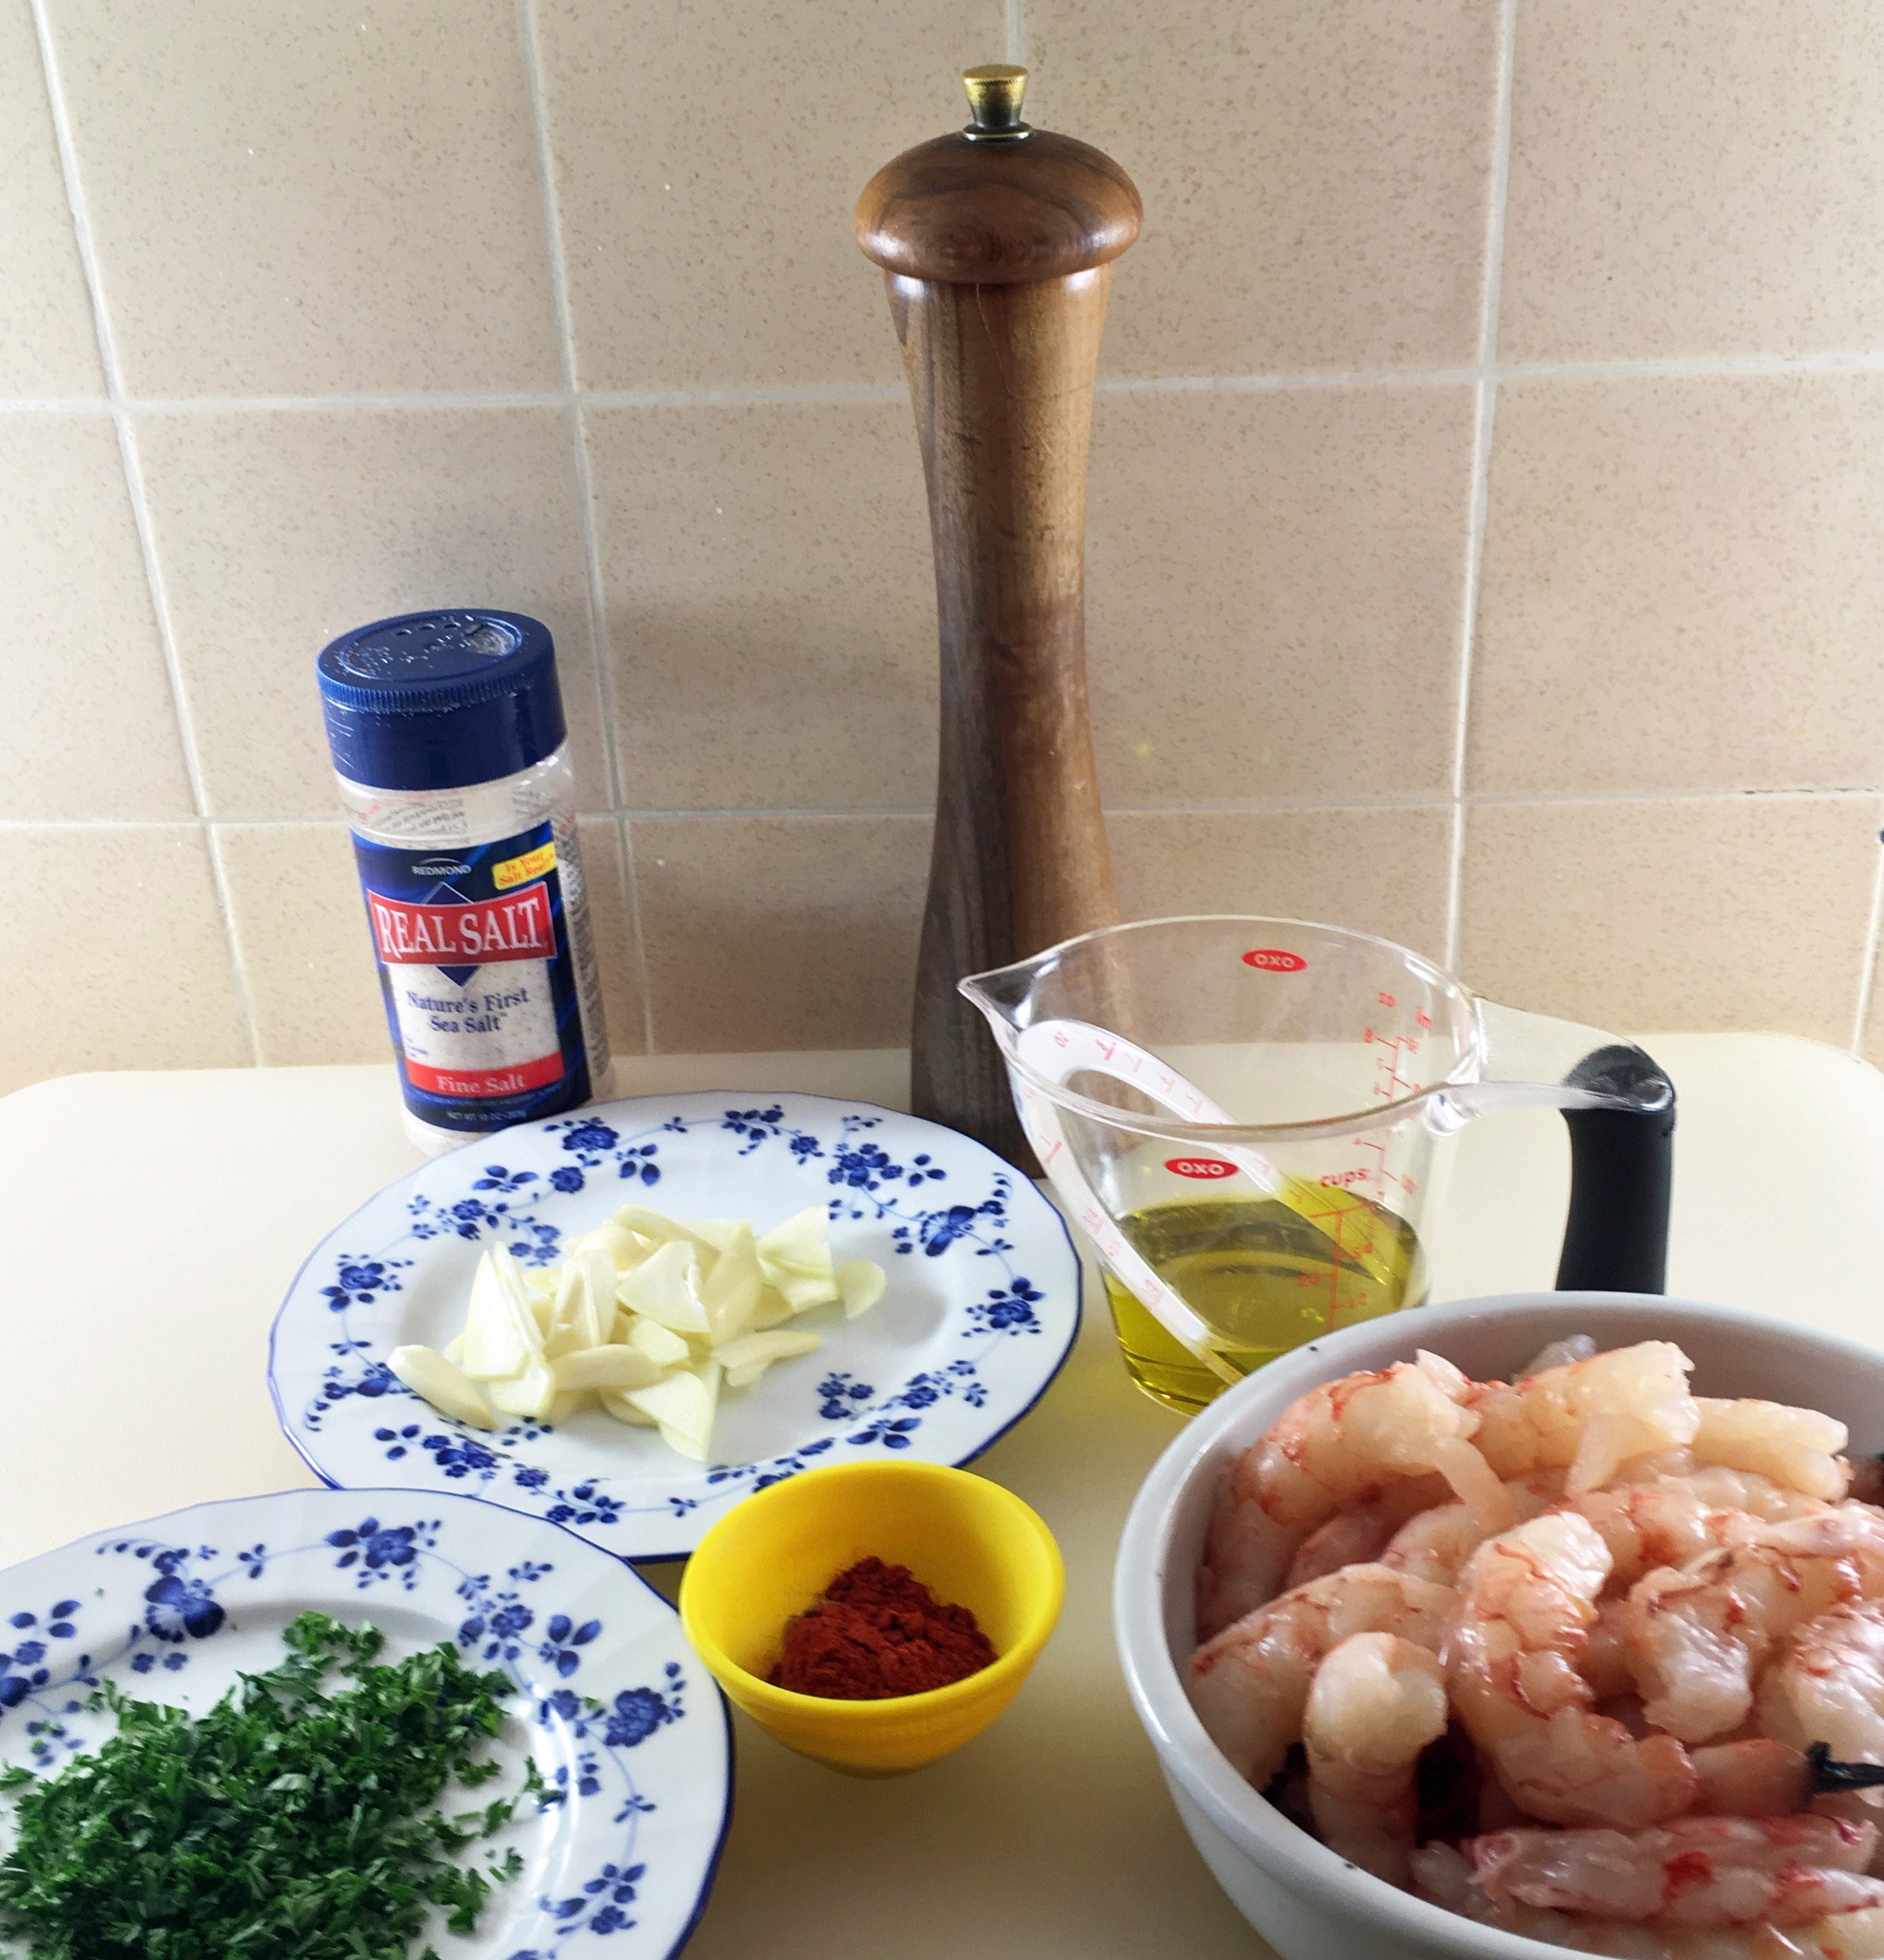 Ingredients mise en place